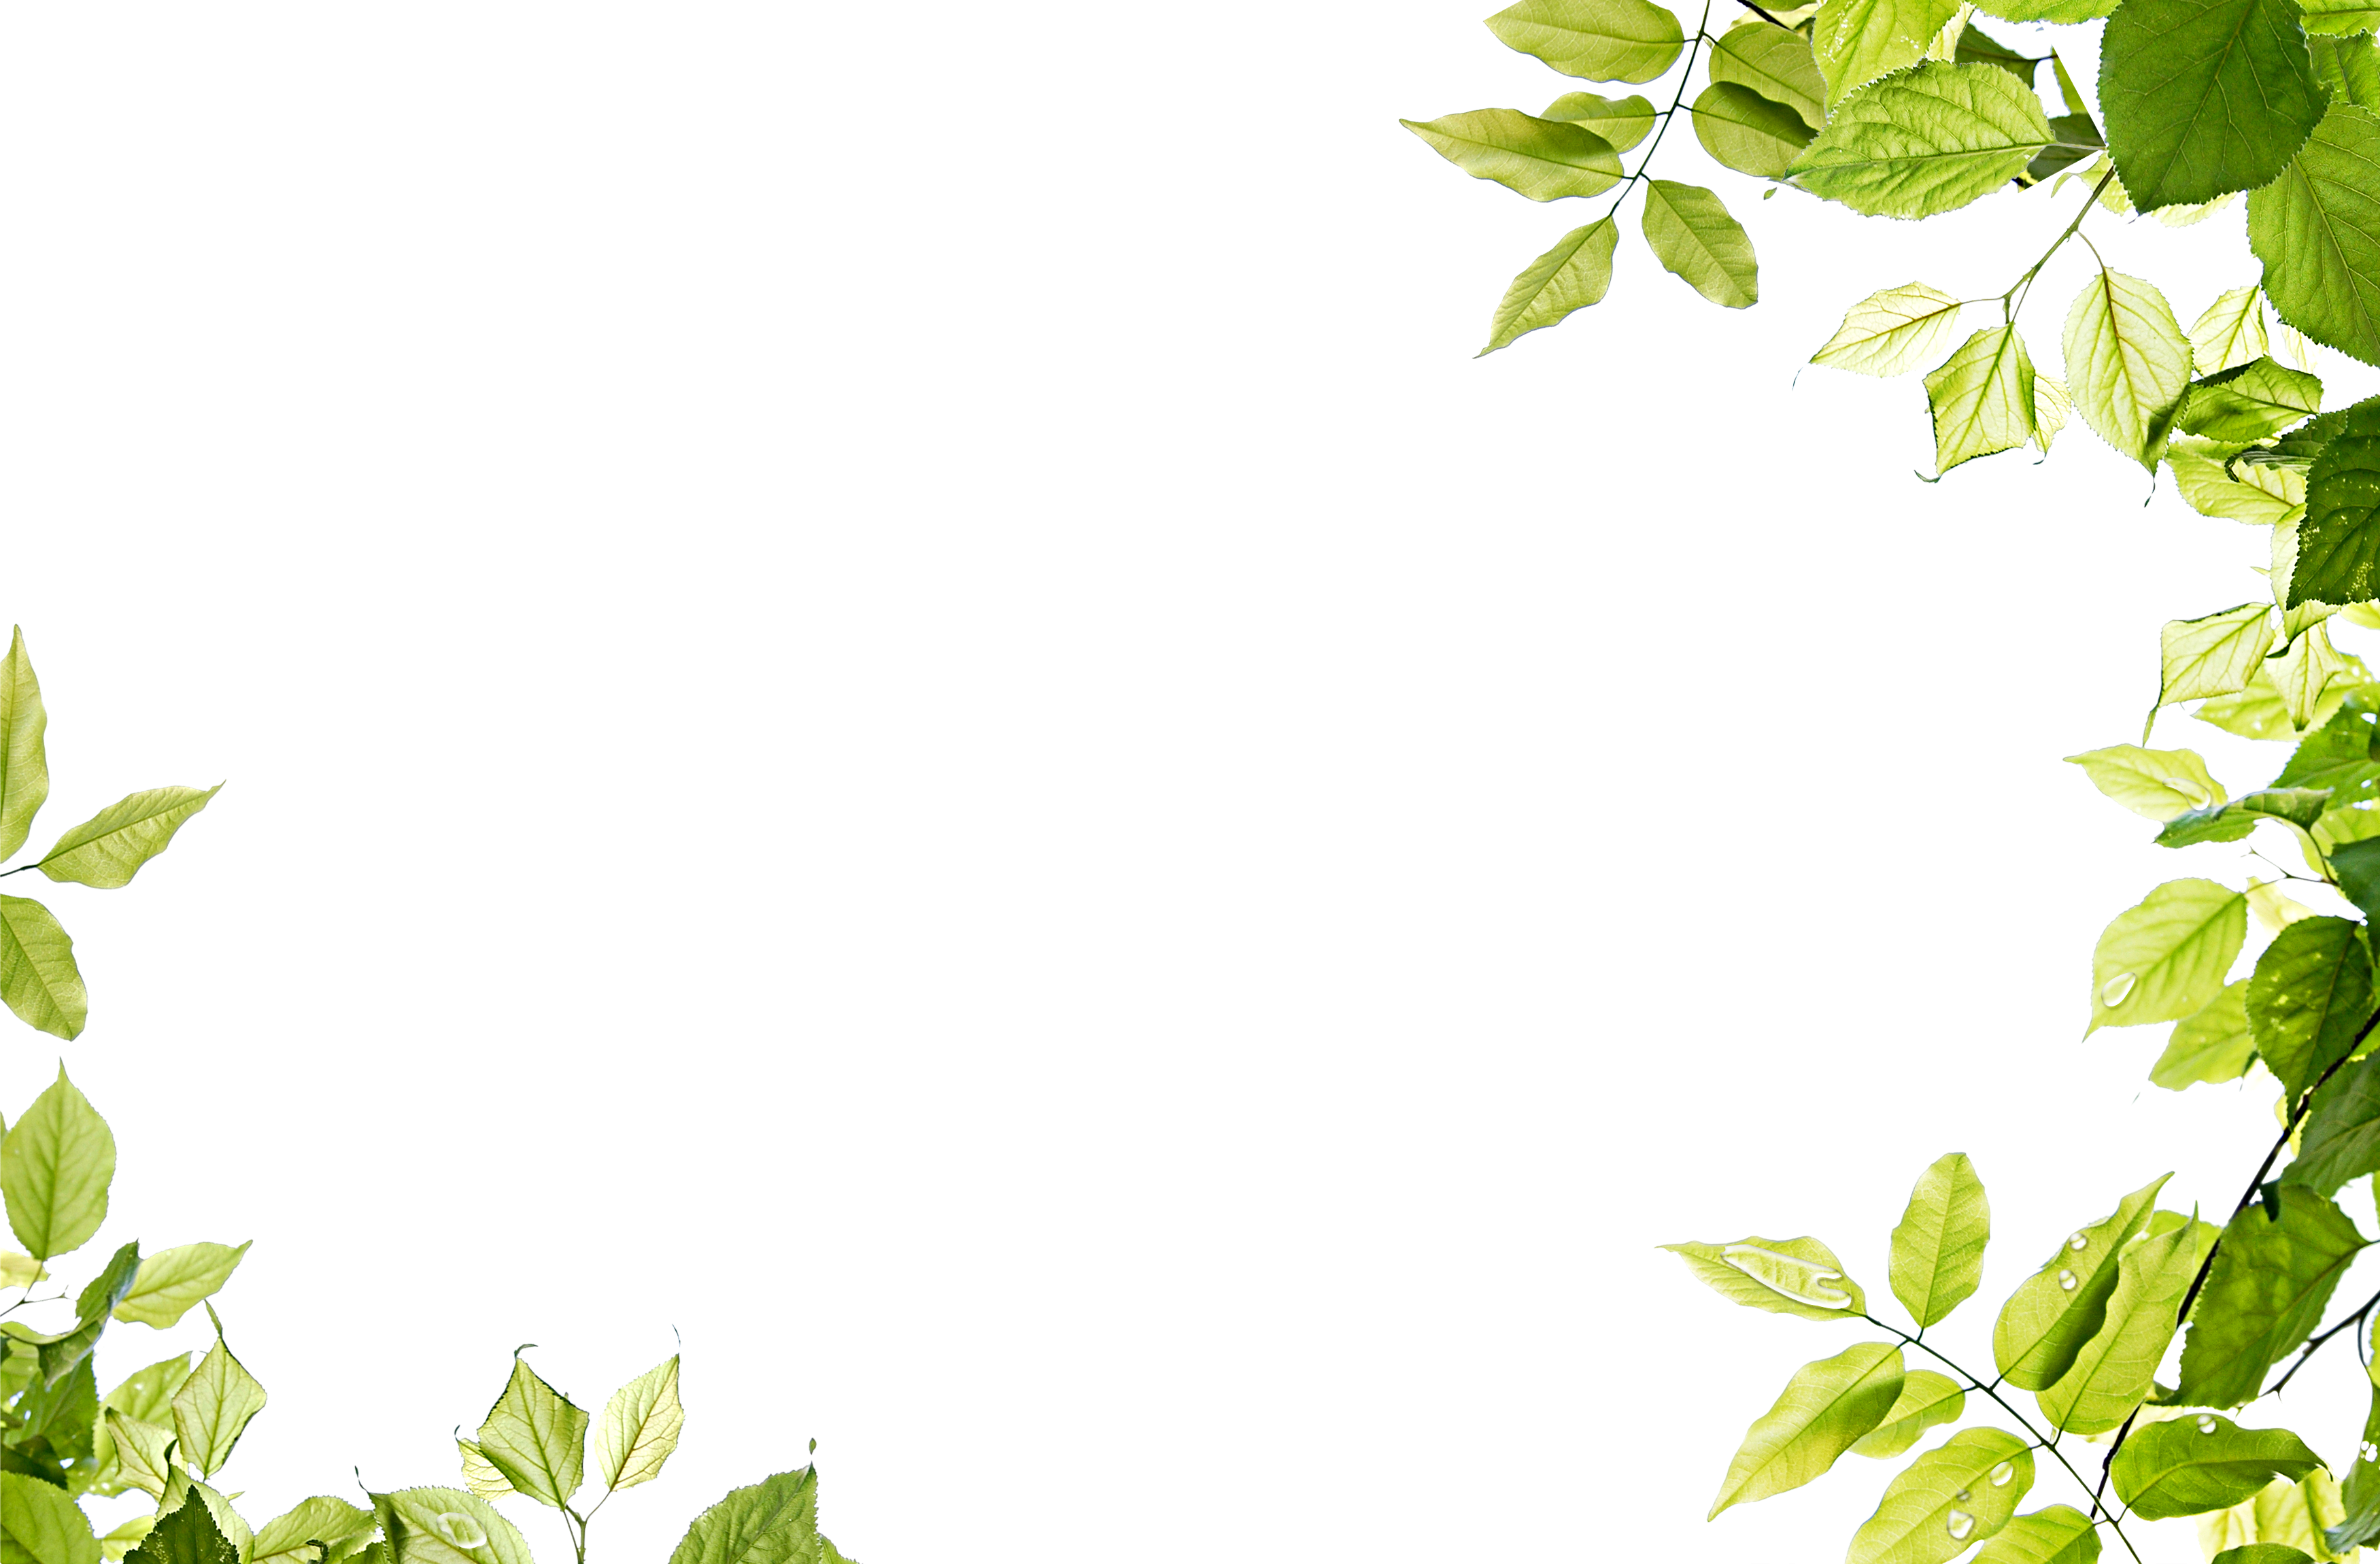 Green Leaf From Edge Hd Video Frame Transparent Background image #47684